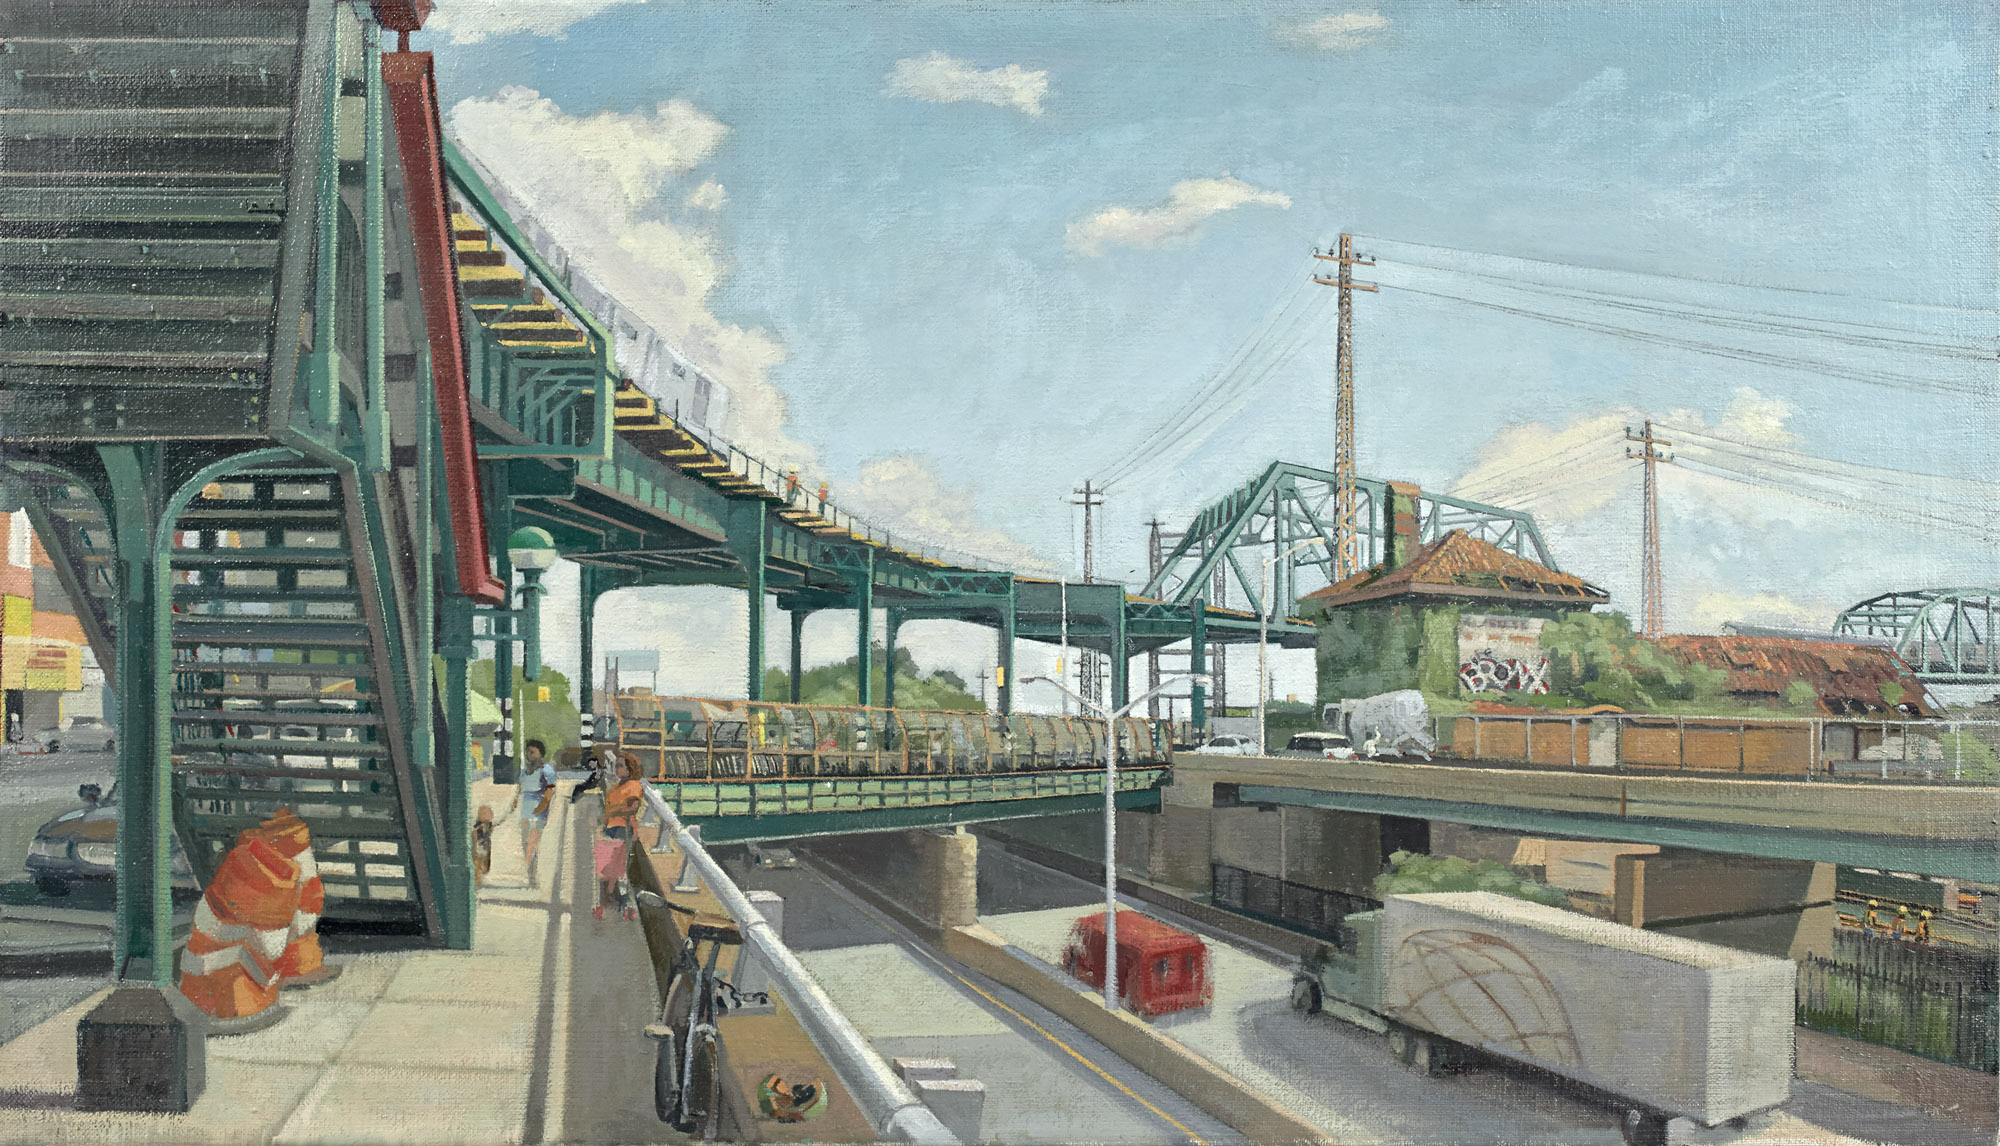 Whitlock Bridge Round | Oil / Linen | Size 19 x 33 in. | 2011